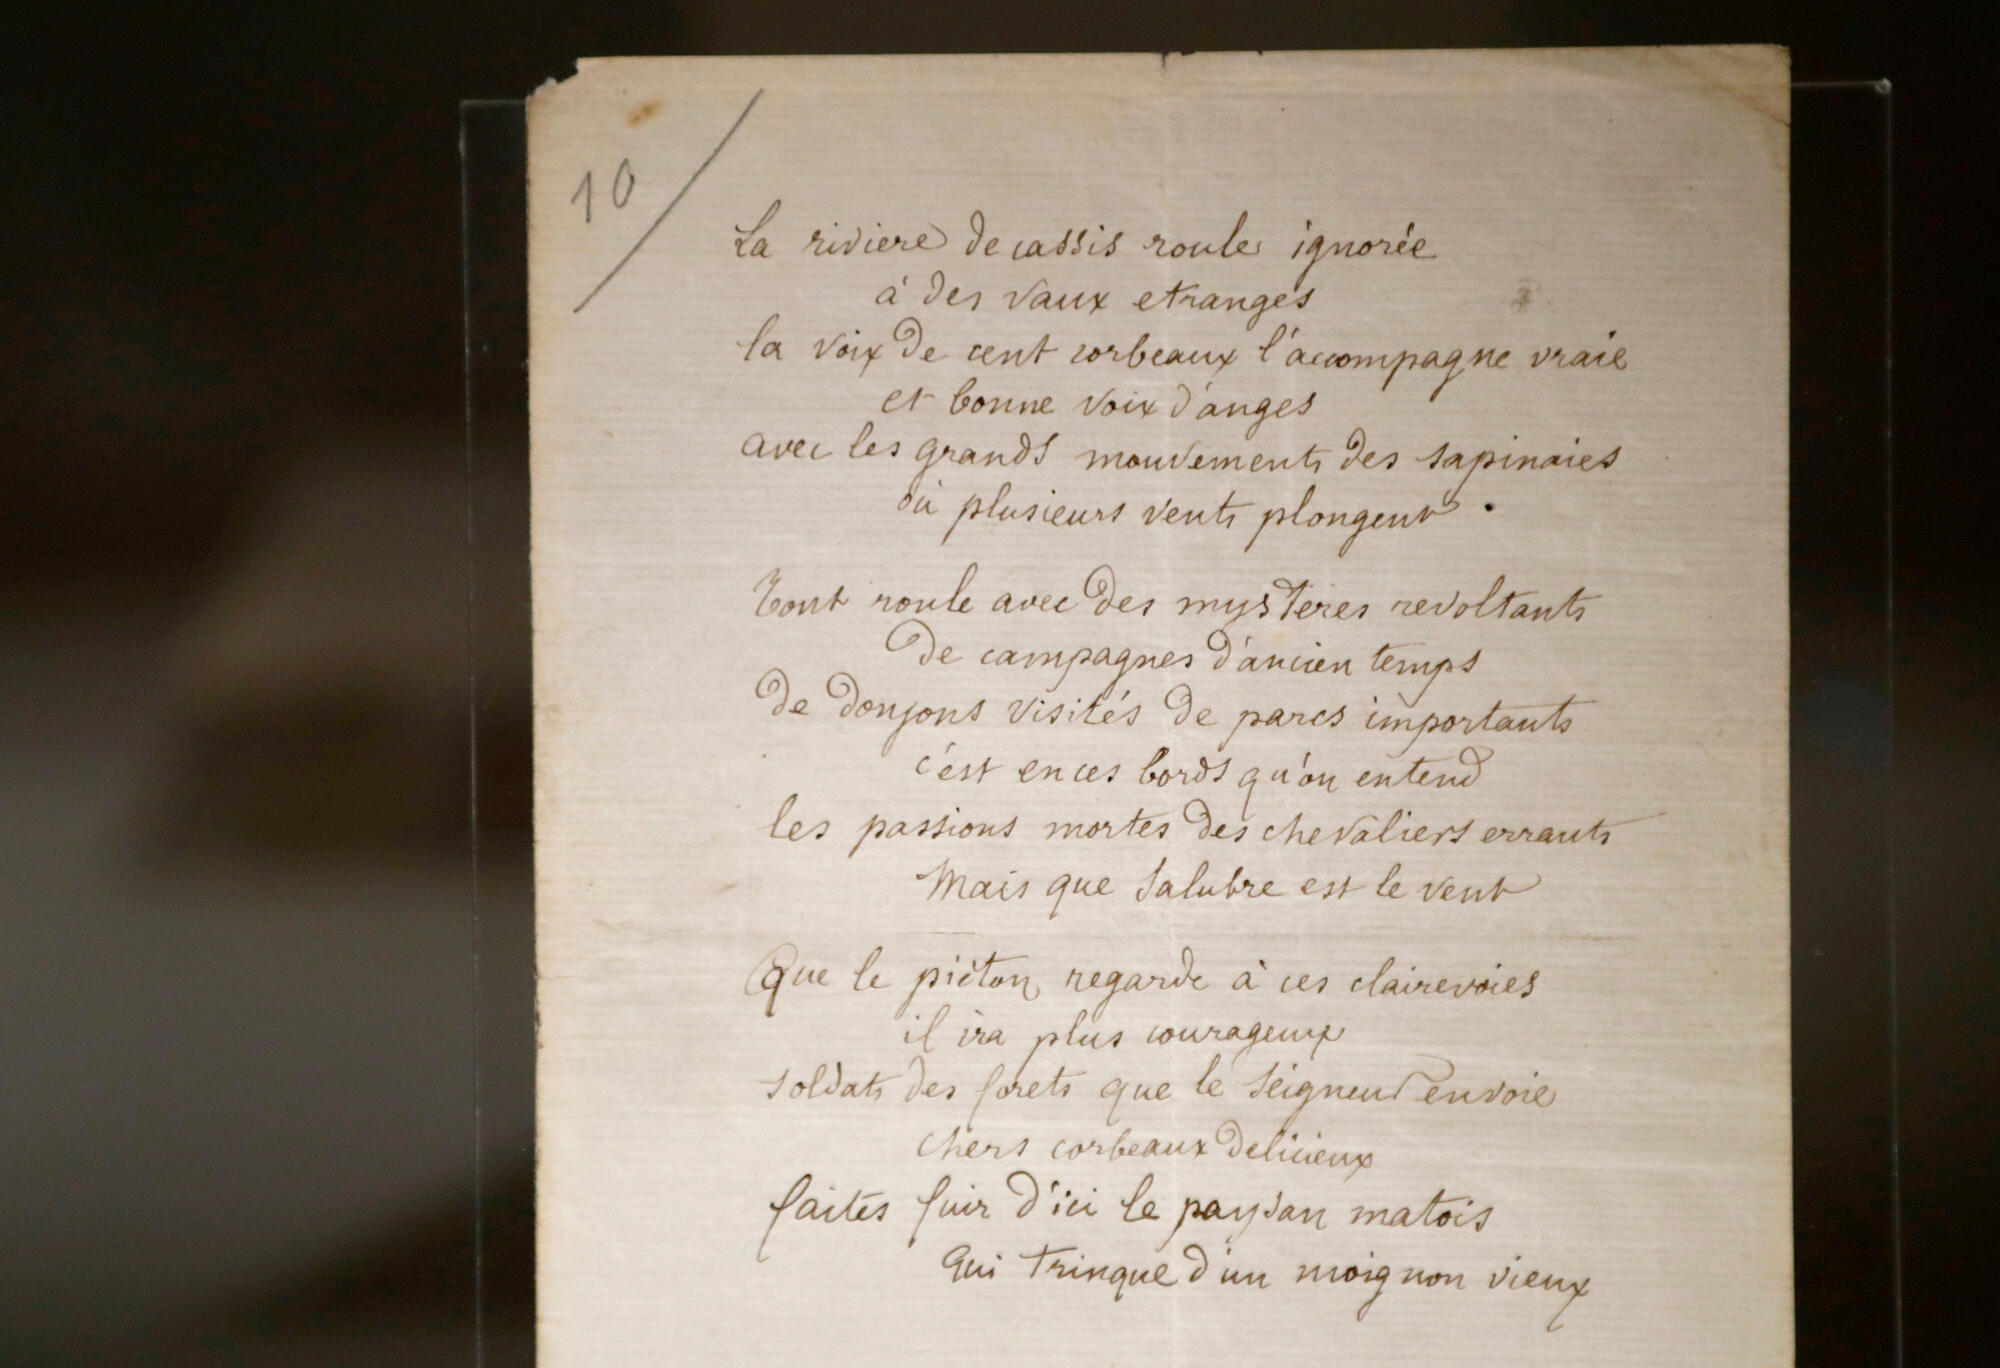 """The poem """"La riviere de Cassis"""", written by French poet Arthur Rimbaud in 1872, will be auctioned at Sotheby's Paris on February 8, 2017."""